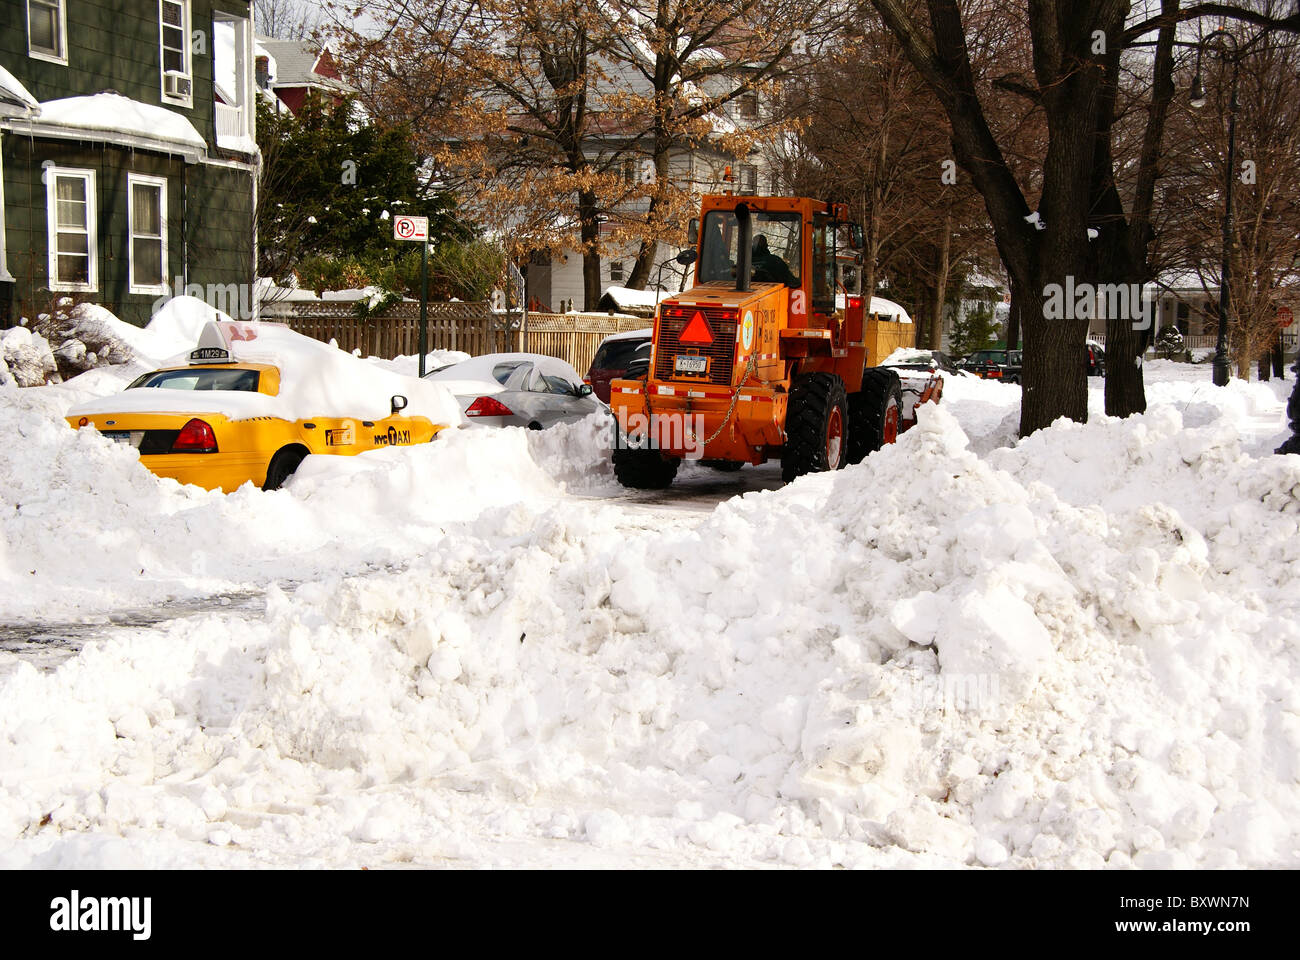 Bulldozer helps in snow cleaning effort in New York - Stock Image